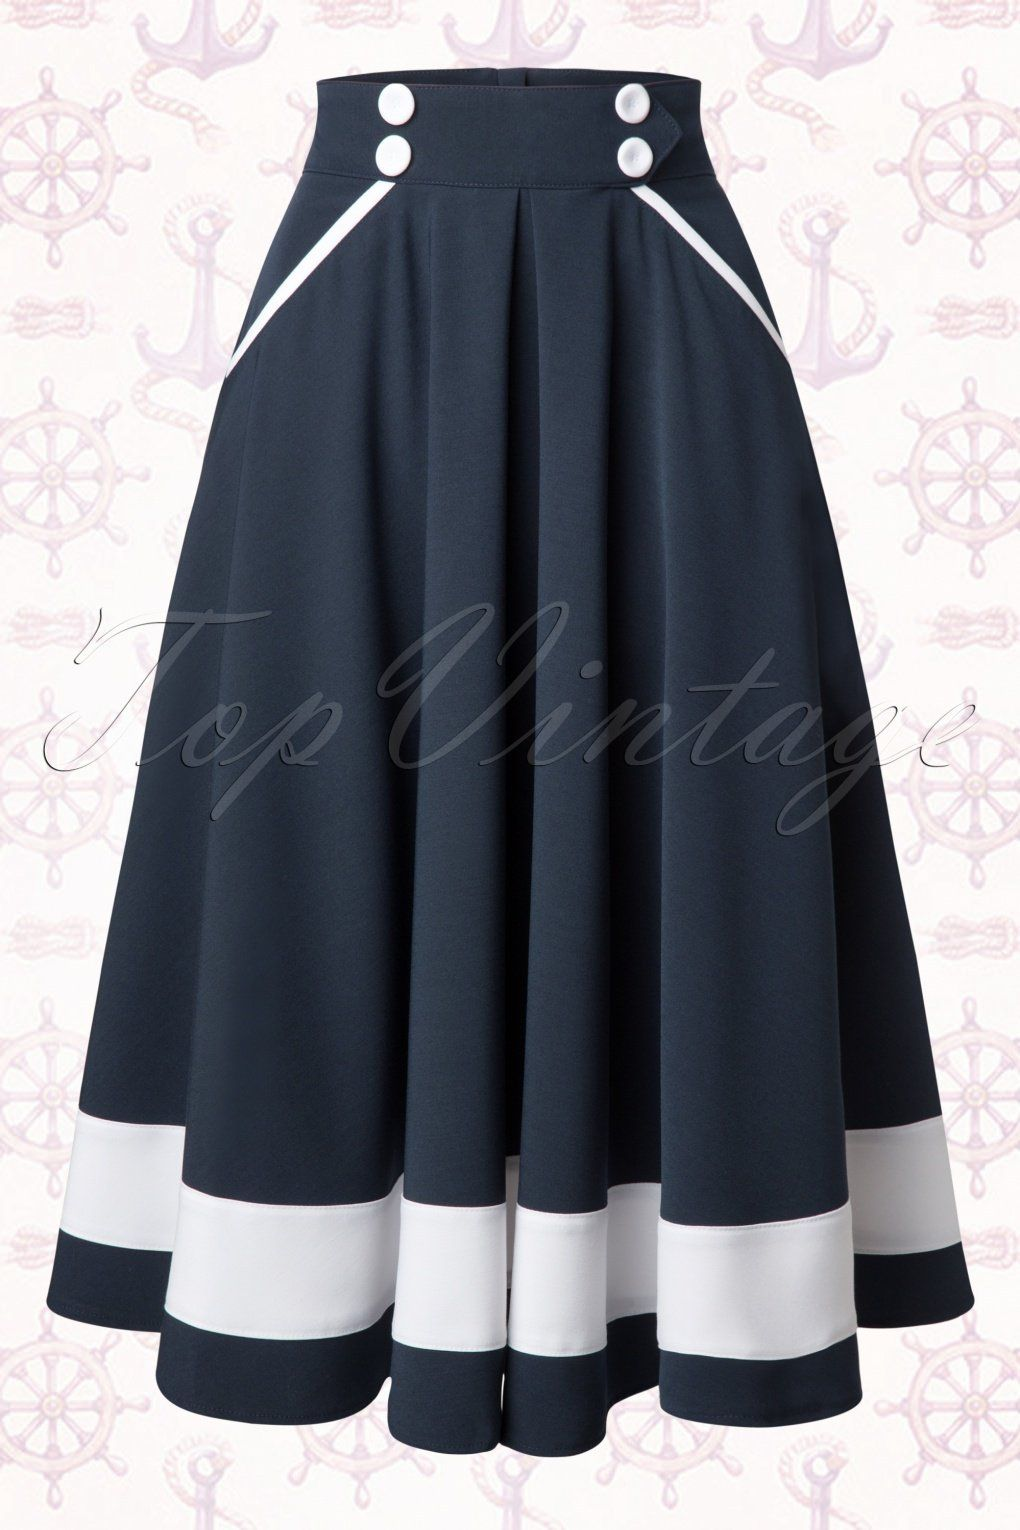 50s Petra Sailor Swing Skirt In Navy 2018 Fashion Pinterest Jfashion Etchnic Long Tunik Elegan Shareen The By Miss Candyfloss Is A Real Must Have For Fifties Marine Lovers An Elegant Inspired With Cute